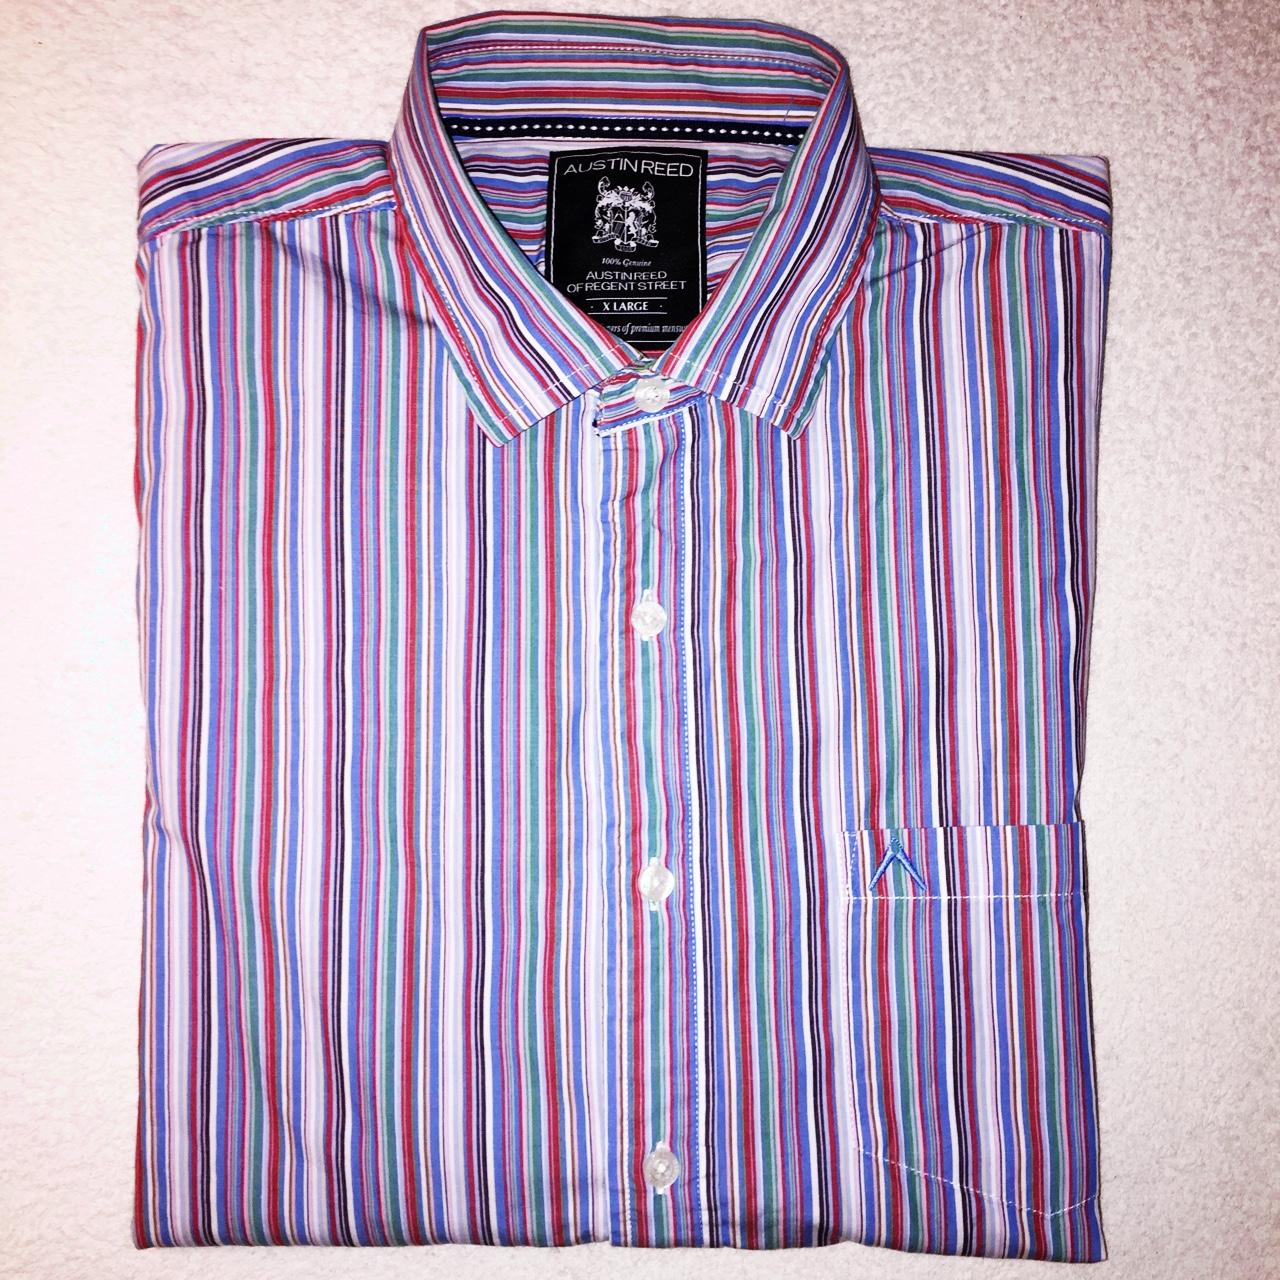 Austin Reed Xl Shirt Button Sleeve Shirt Depop